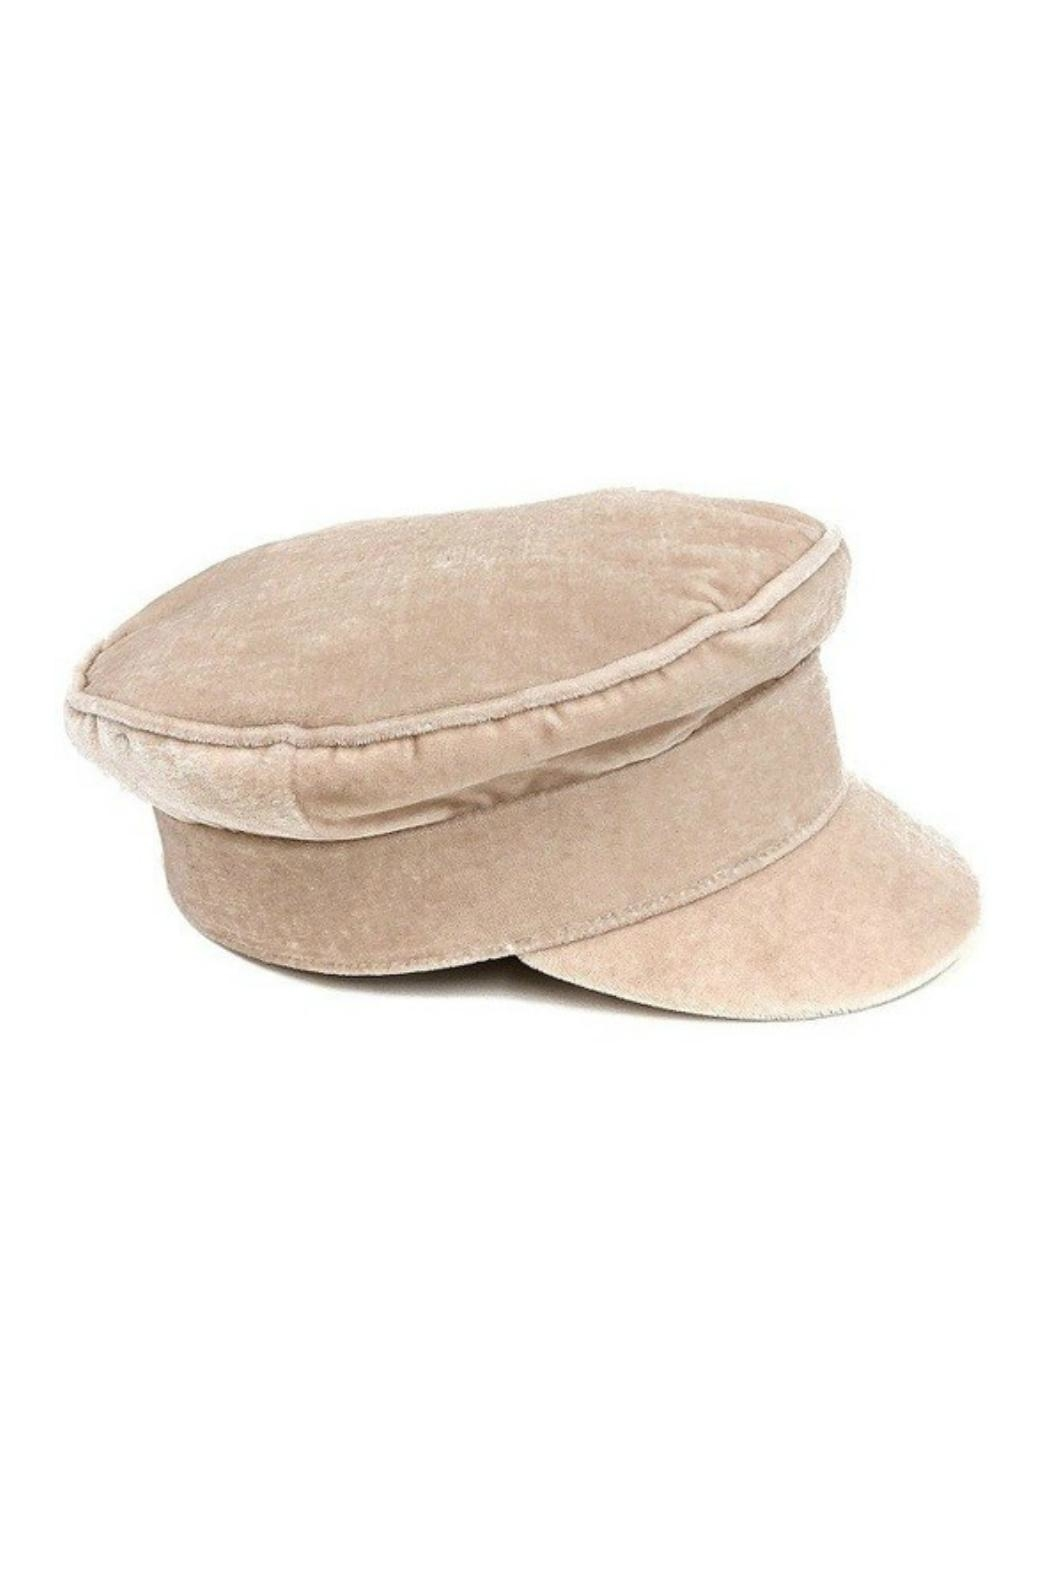 Olive & Pique Sia Conductor Cap - Front Cropped Image